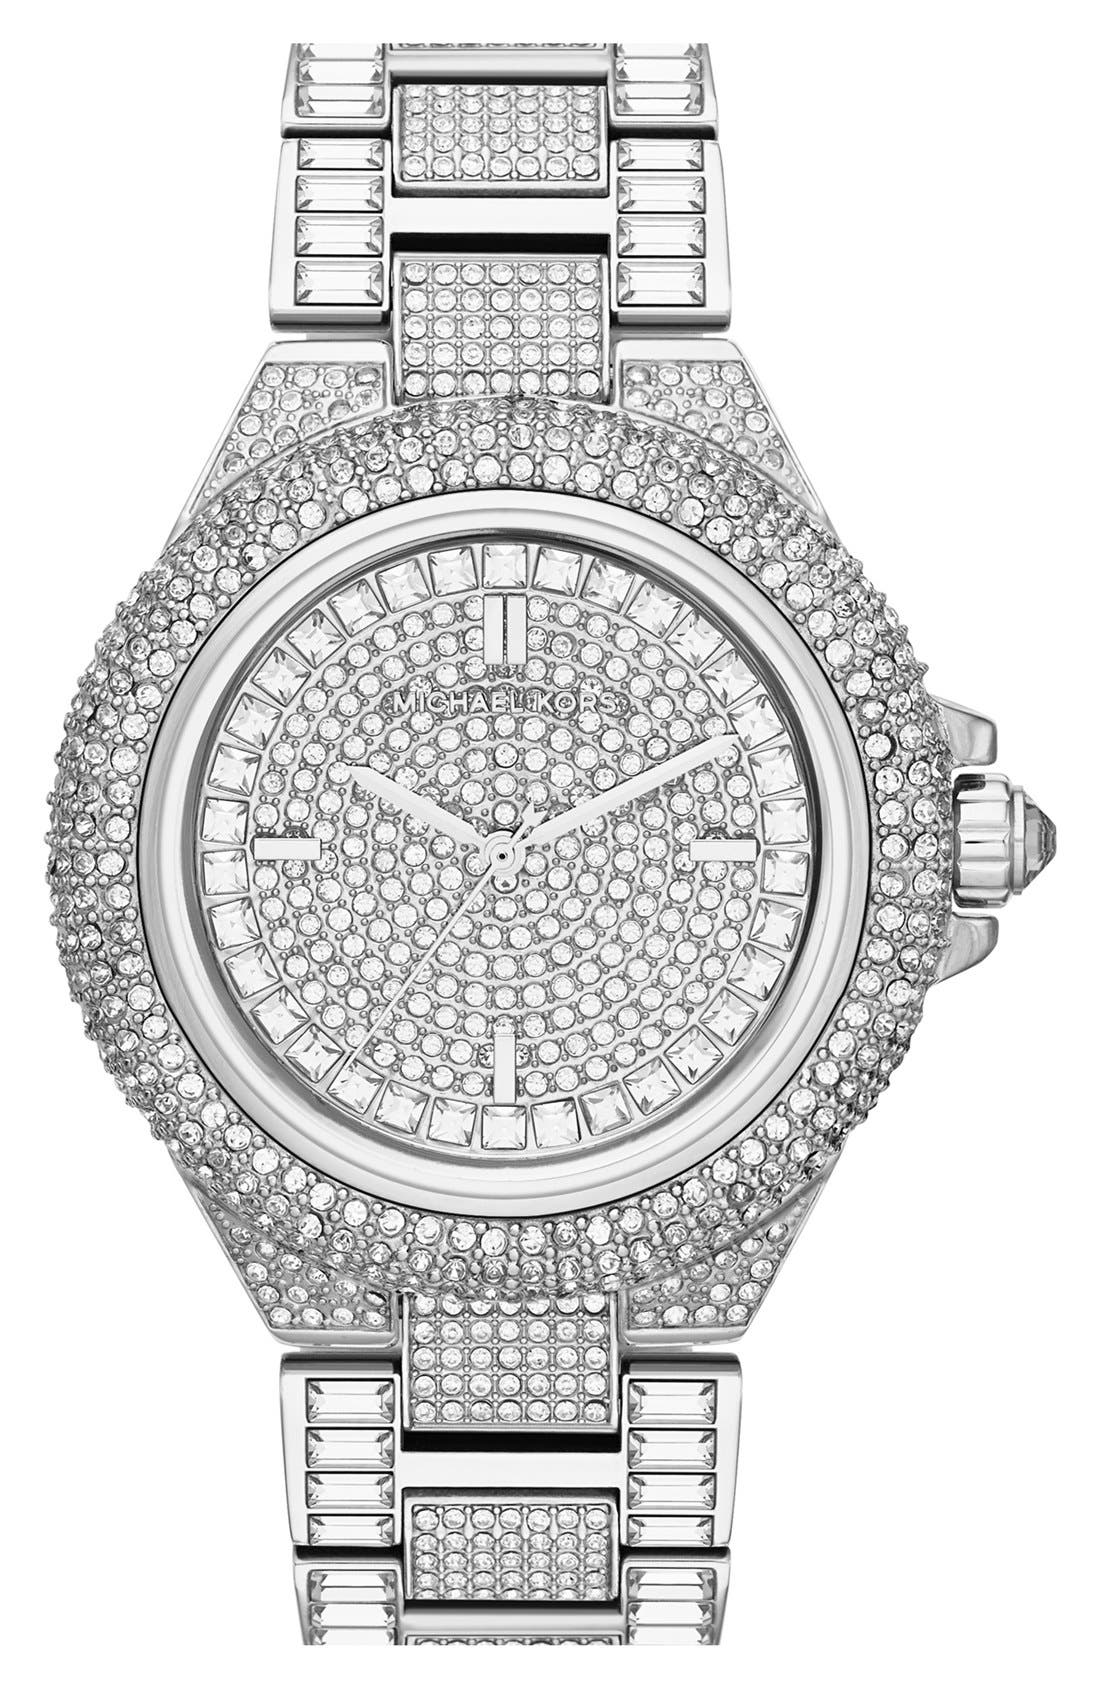 Main Image - Michael Kors 'Camille' Crystal Encrusted Bracelet Watch, 44mm